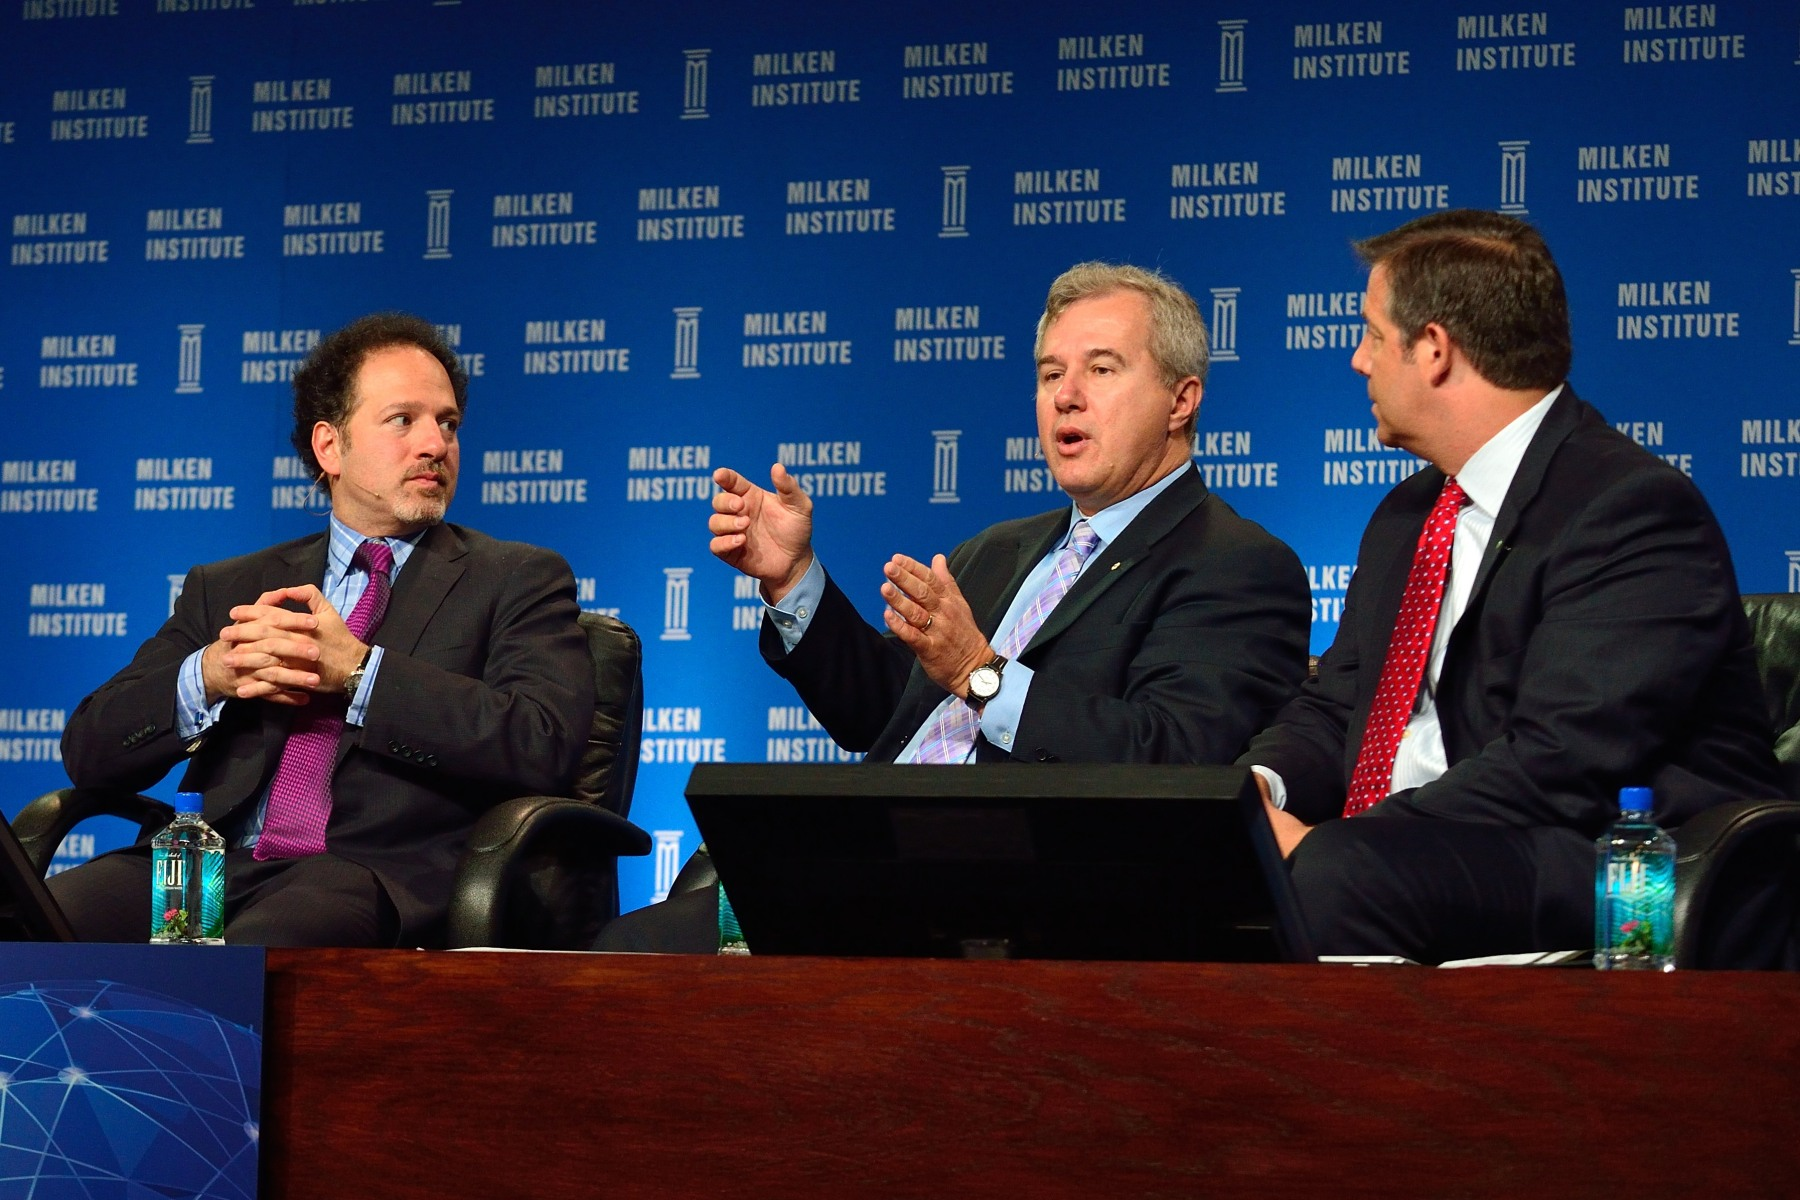 On April 29, 2014, His Excellency the Right Honourable David Johnston, Governor General of Canada, attended a panel discussion on innovation presented at the 2014 Milken Global Conference held in Los Angeles. The Conference welcomes 3 000 leading thinkers from disparate disciplines to exchange ideas and solve some of the world's toughest challenges. These high-powered CEOs, investors, innovators, policy-makers, philanthropists, educators and scientists challenge each other's thinking on topics from financial markets, economic development, energy, and global health, to public policy, education, media and technology.